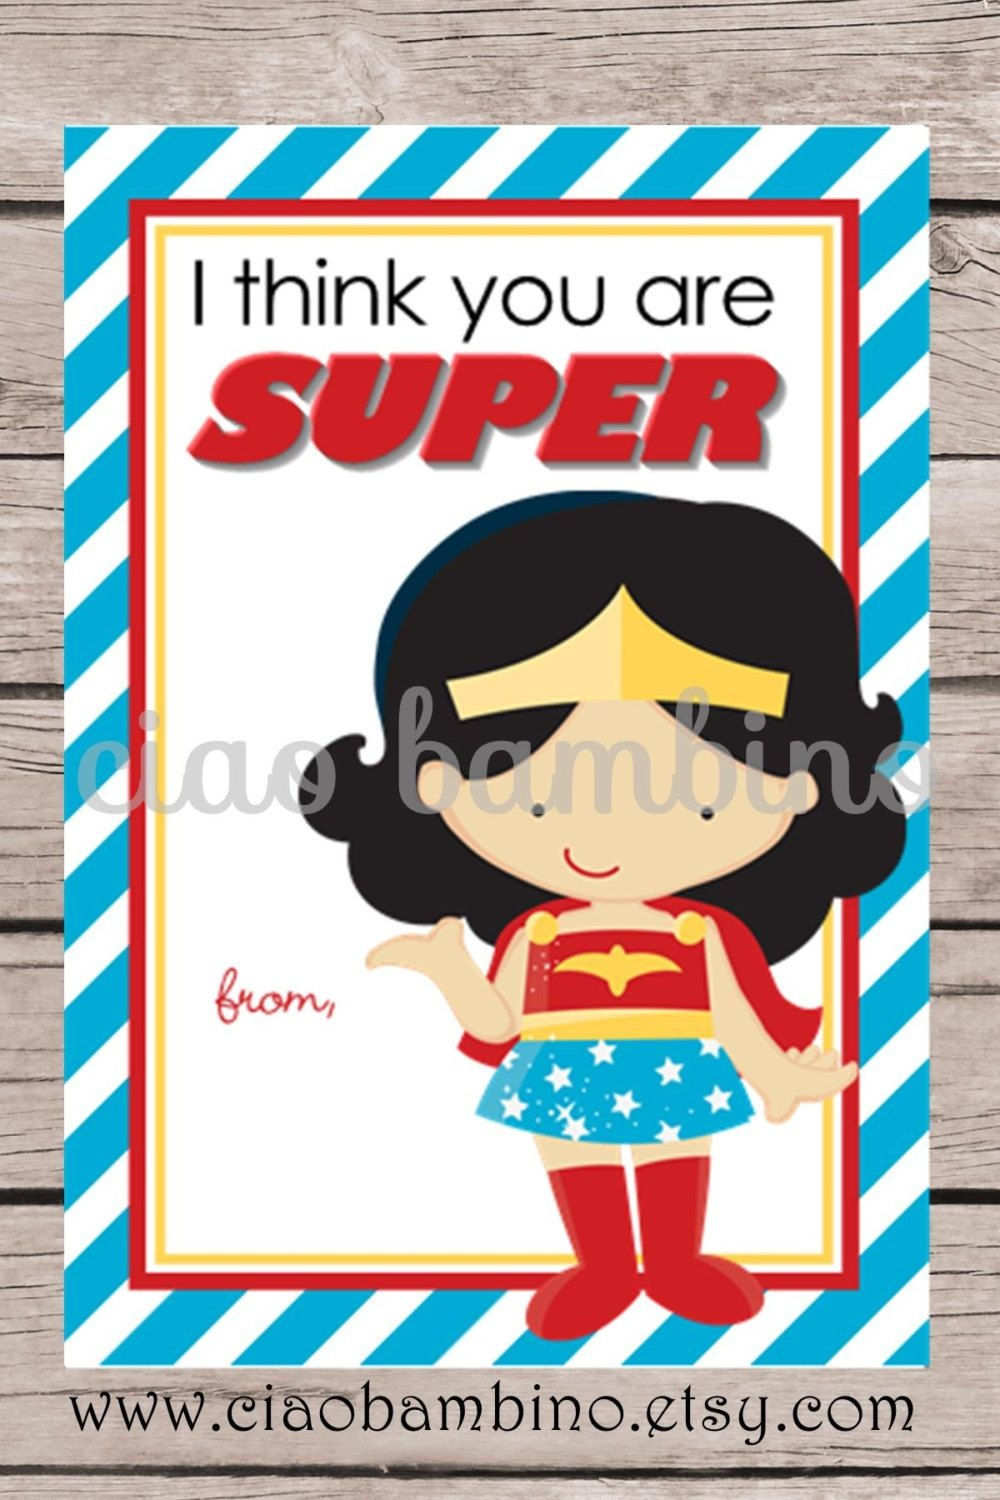 Printable Wonder Woman Valentine's Day Card Forciaobambino - Free Printable Superman Valentine Cards